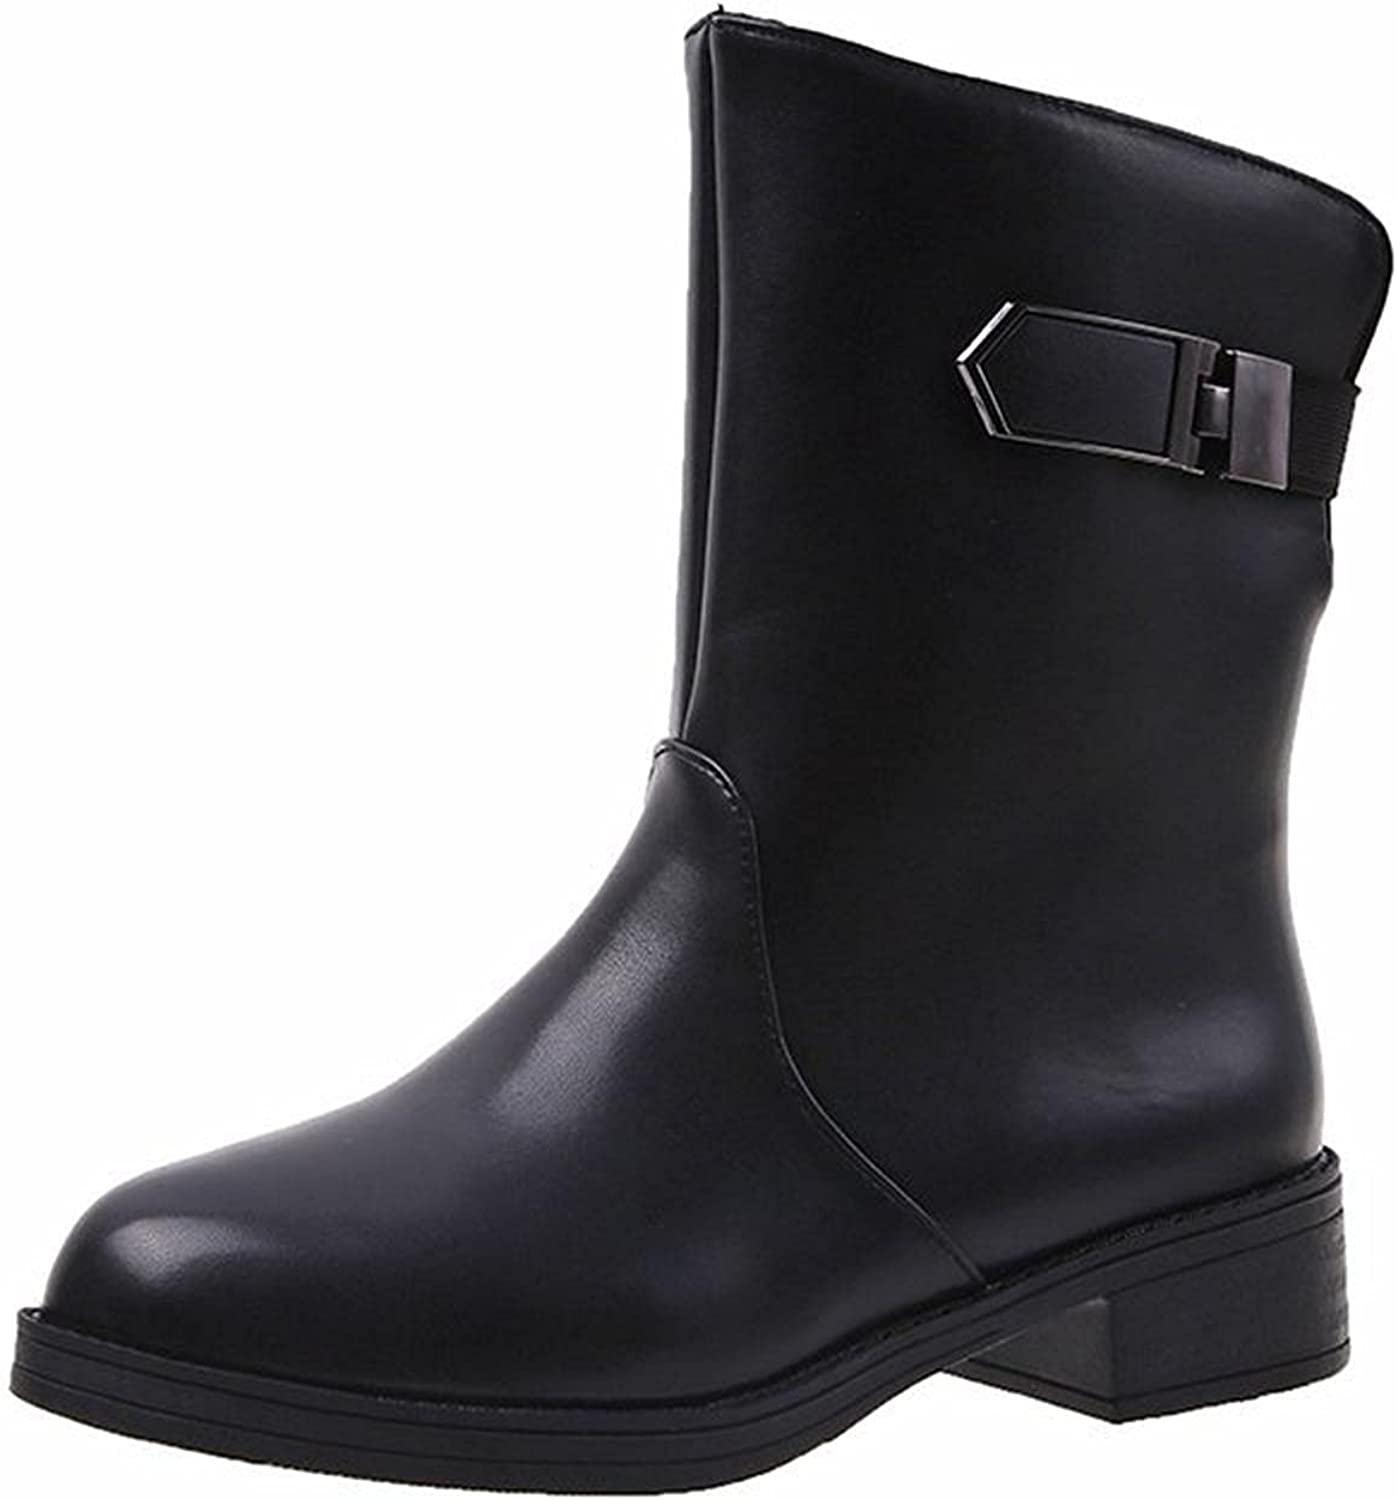 Winter Leather Shoes for Women,Fashion Women's Shoes Thick-soled Colorblock Brock Wedges Short Boots